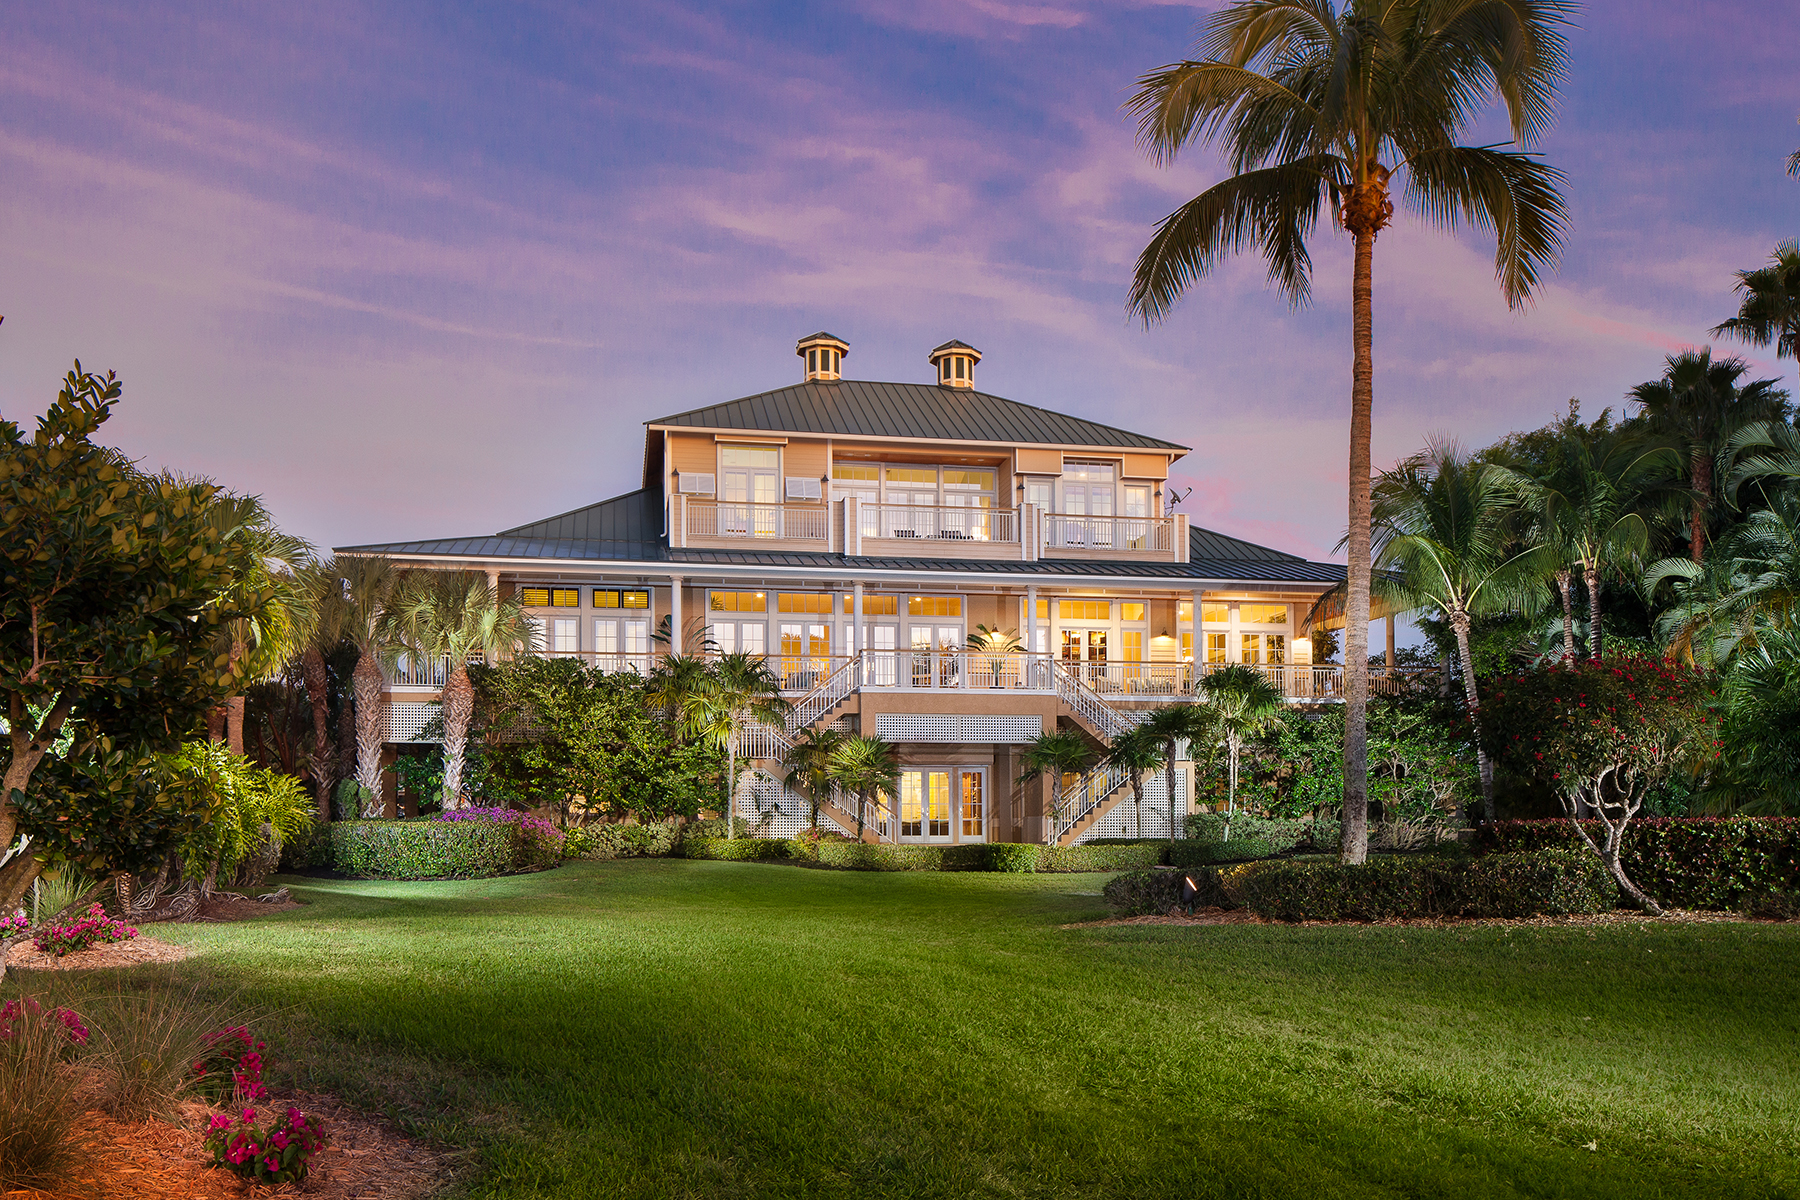 Single Family Home for Sale at 201 Barefoot Beach Blvd , Bonita Springs, FL 34134 201 Barefoot Beach Blvd, Bonita Springs, Florida 34134 United States